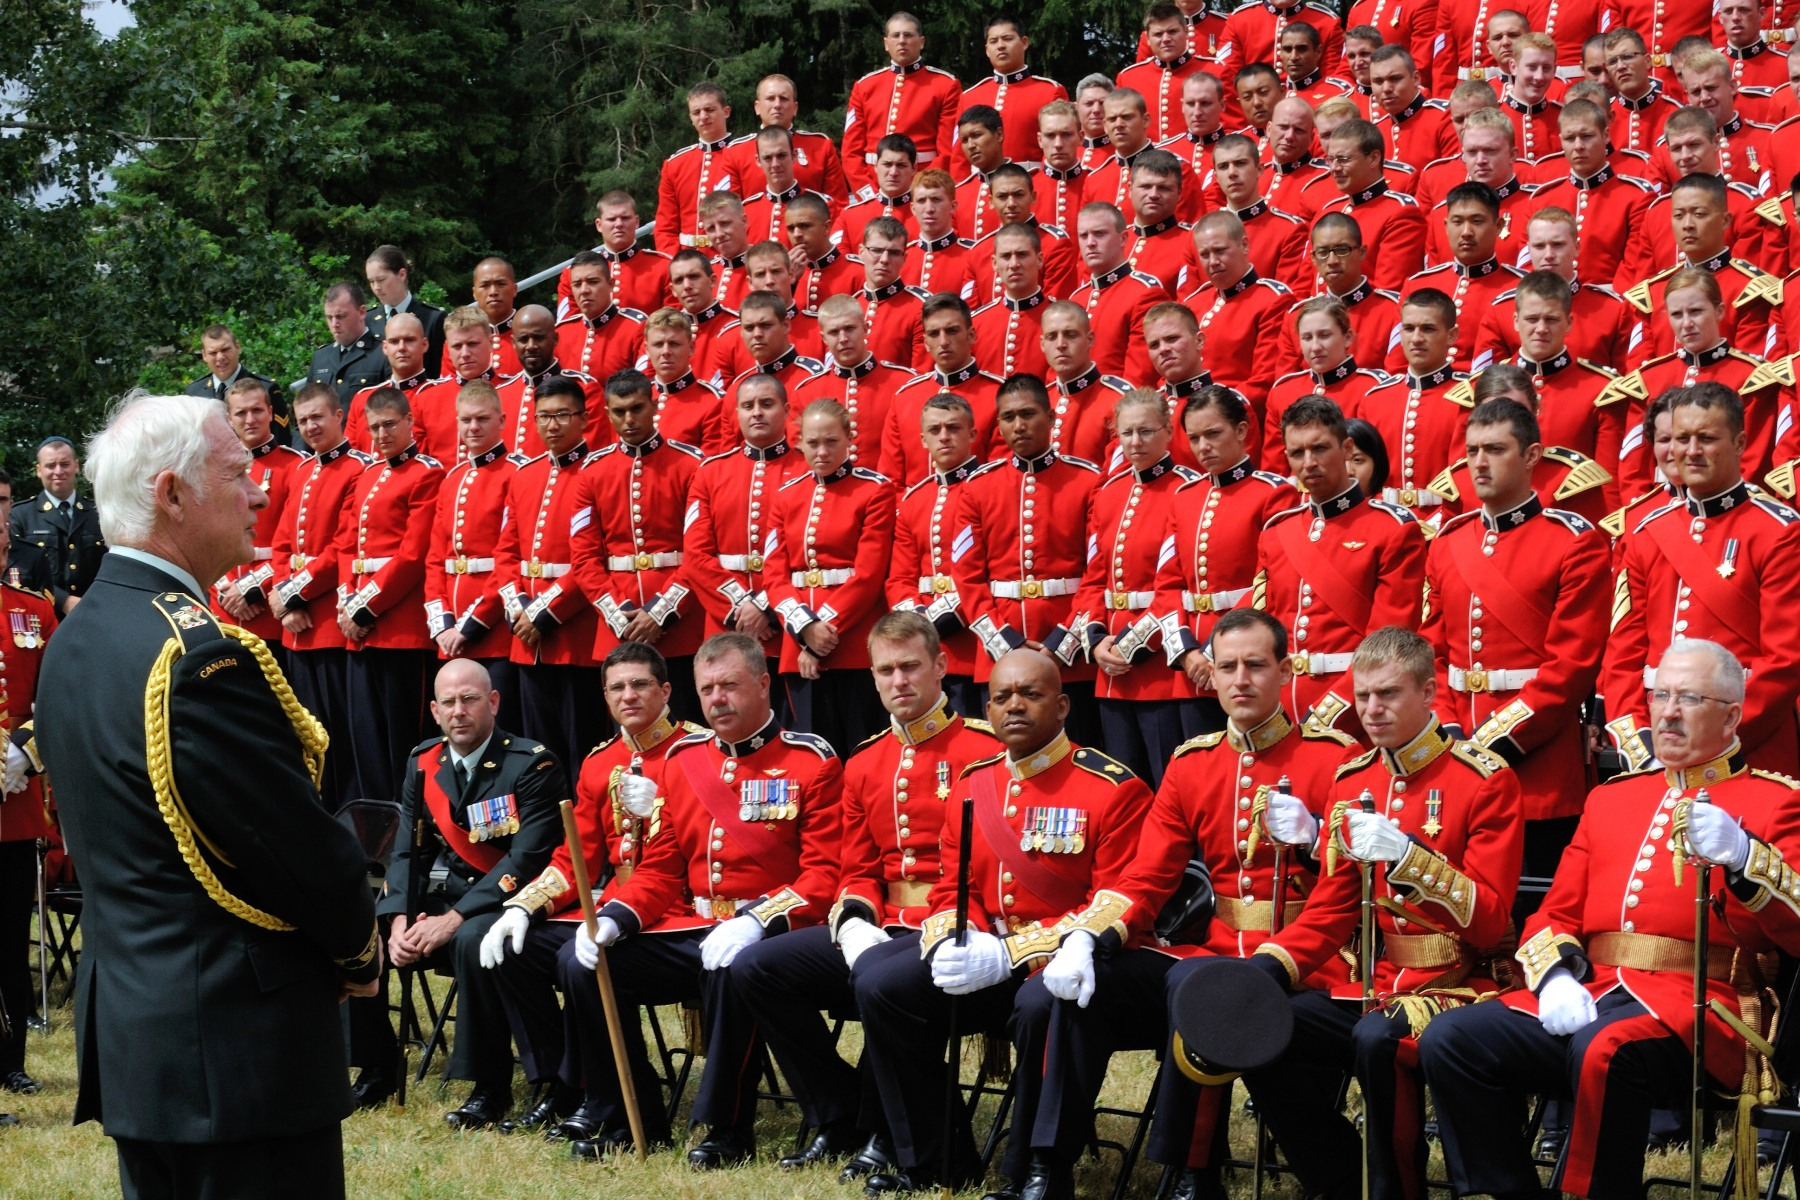 Following the event, His Excellency spoke to the women and men of the Ceremonial Guard.